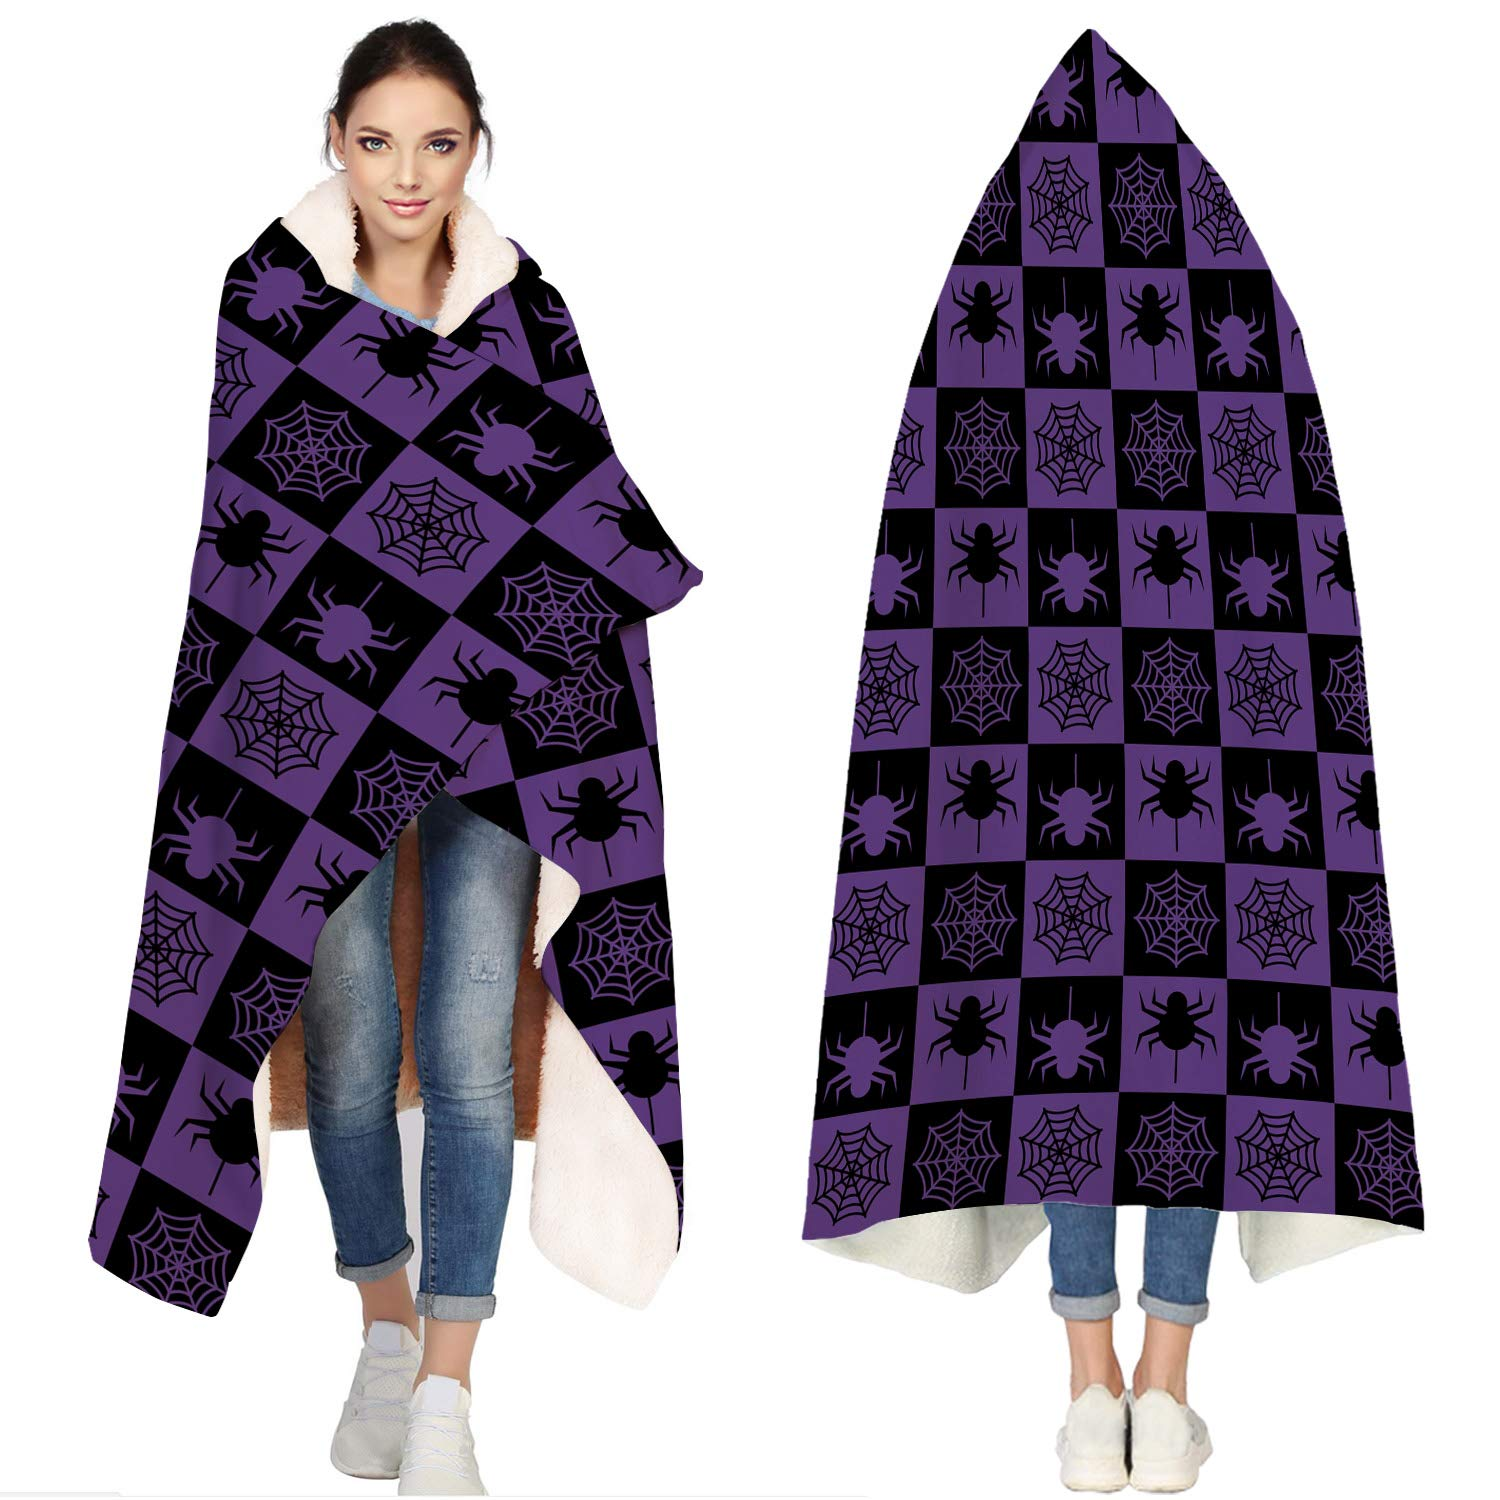 SUN-Shine Happy Halloween Sherpa Hooded Blanket, Wrap Soft Flannel Fleece Wearable Throw Hoodie Blankets for Kids Adults Girls Boys, Black and Purple Spider and Webs by SUN-Shine